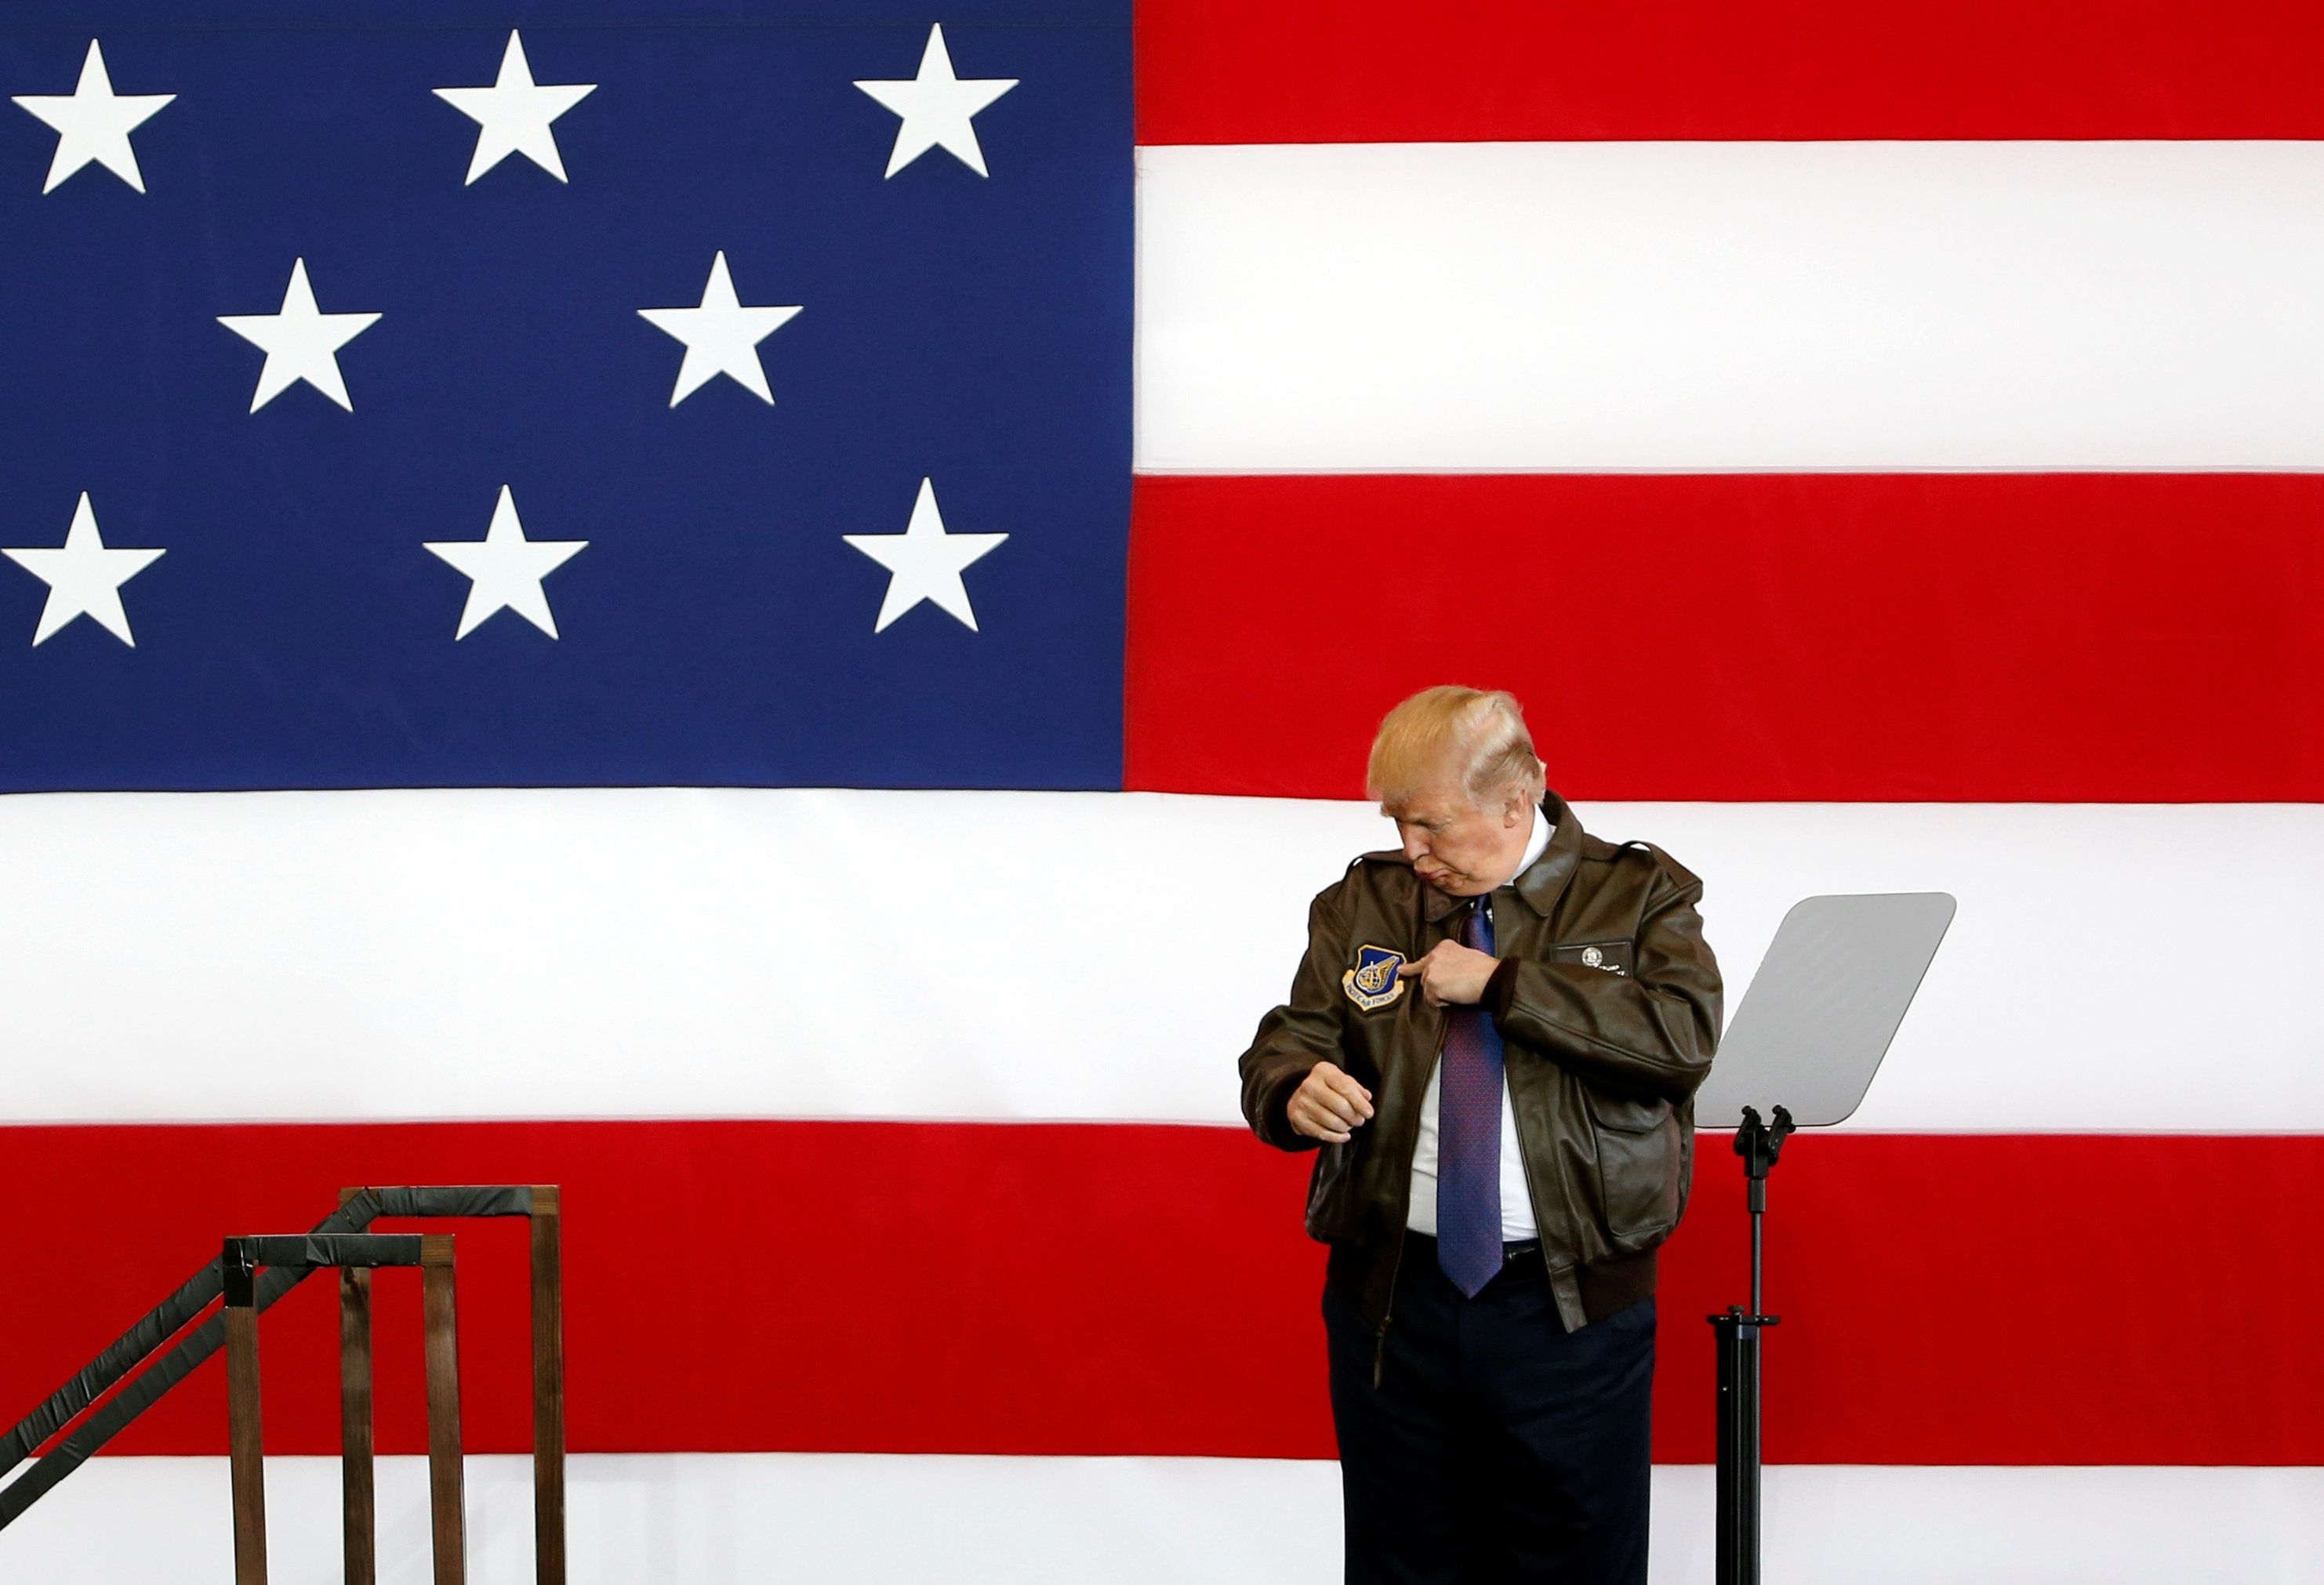 U.S. President Donald Trump points to a detail on his flight jacket while on stage at U.S. Air Force Yokota Air Base in Fussa, on the outskirts of Tokyo, Japan, November 5, 2017. REUTERS/Toru Hanai